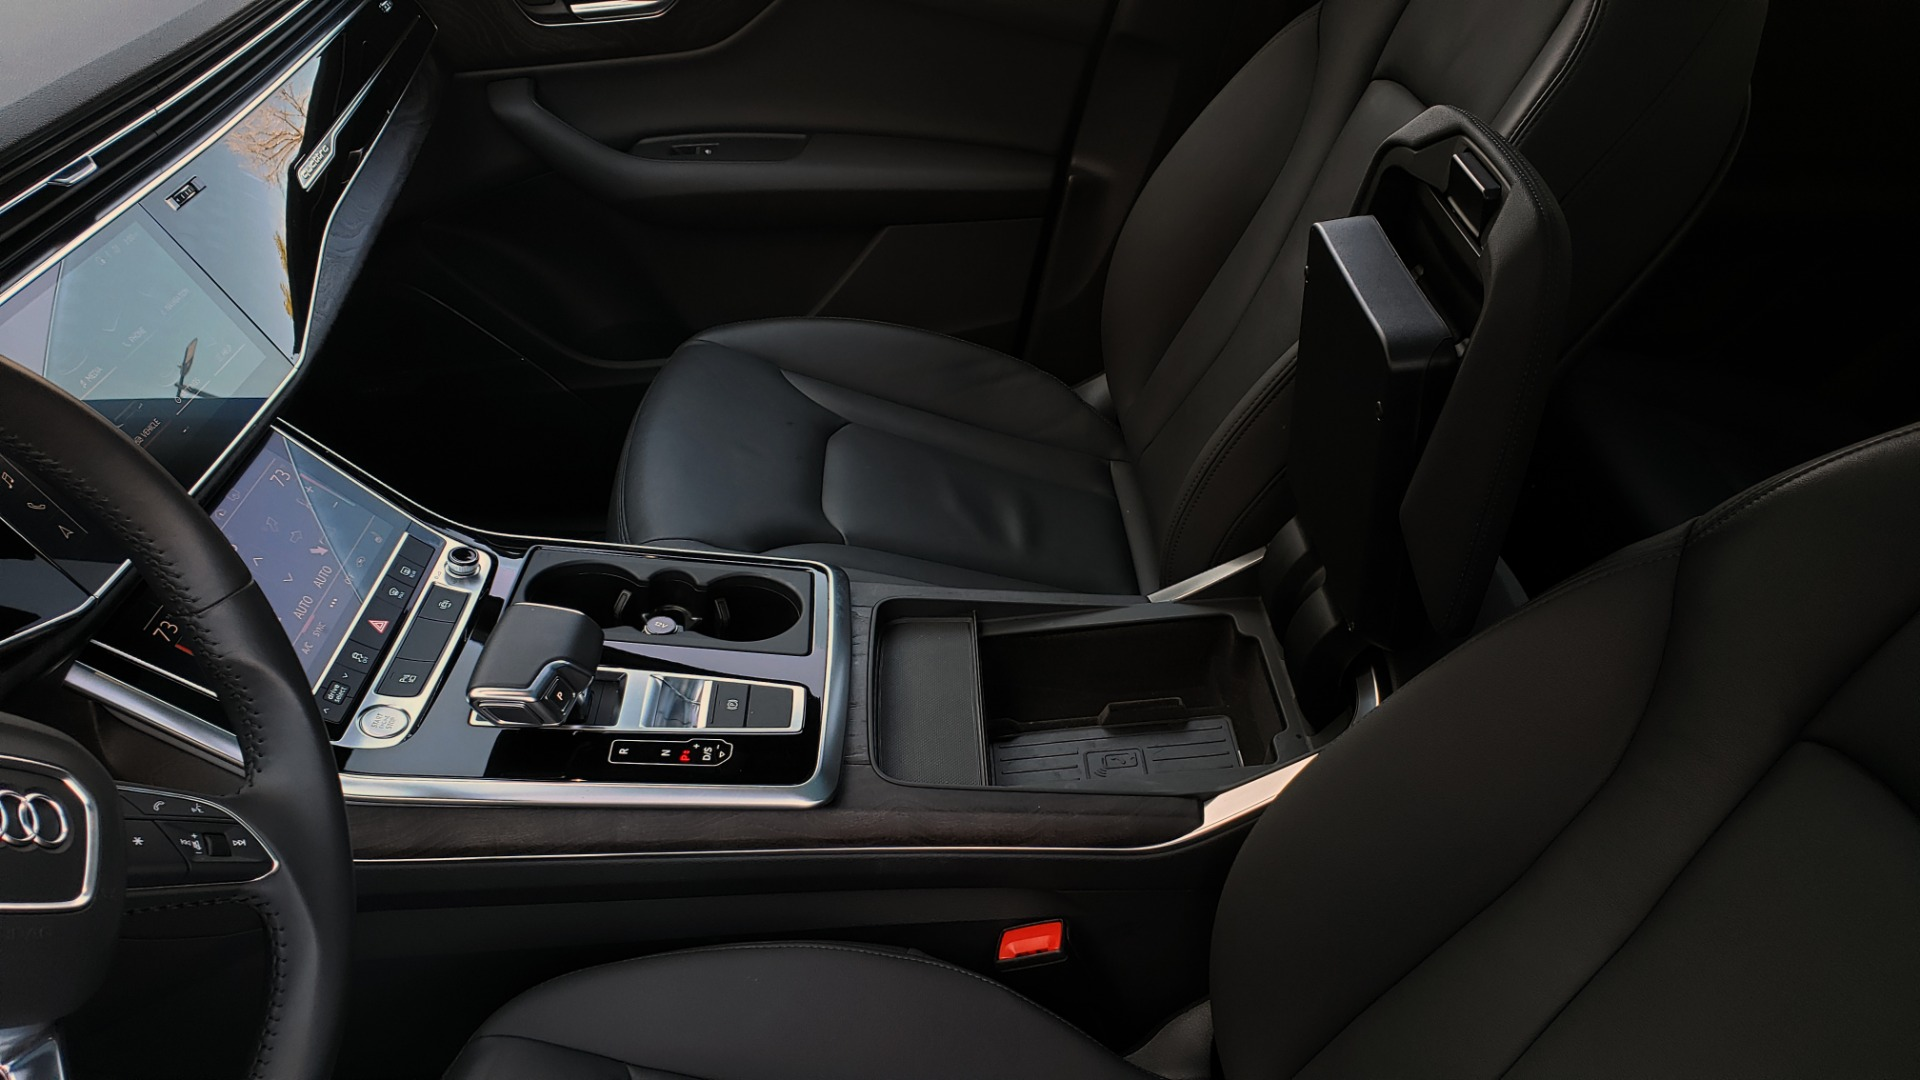 Used 2020 Audi Q7 PREMIUM PLUS / NAV / SUNROOF / 3-ROW / REARVIEW for sale Sold at Formula Imports in Charlotte NC 28227 59